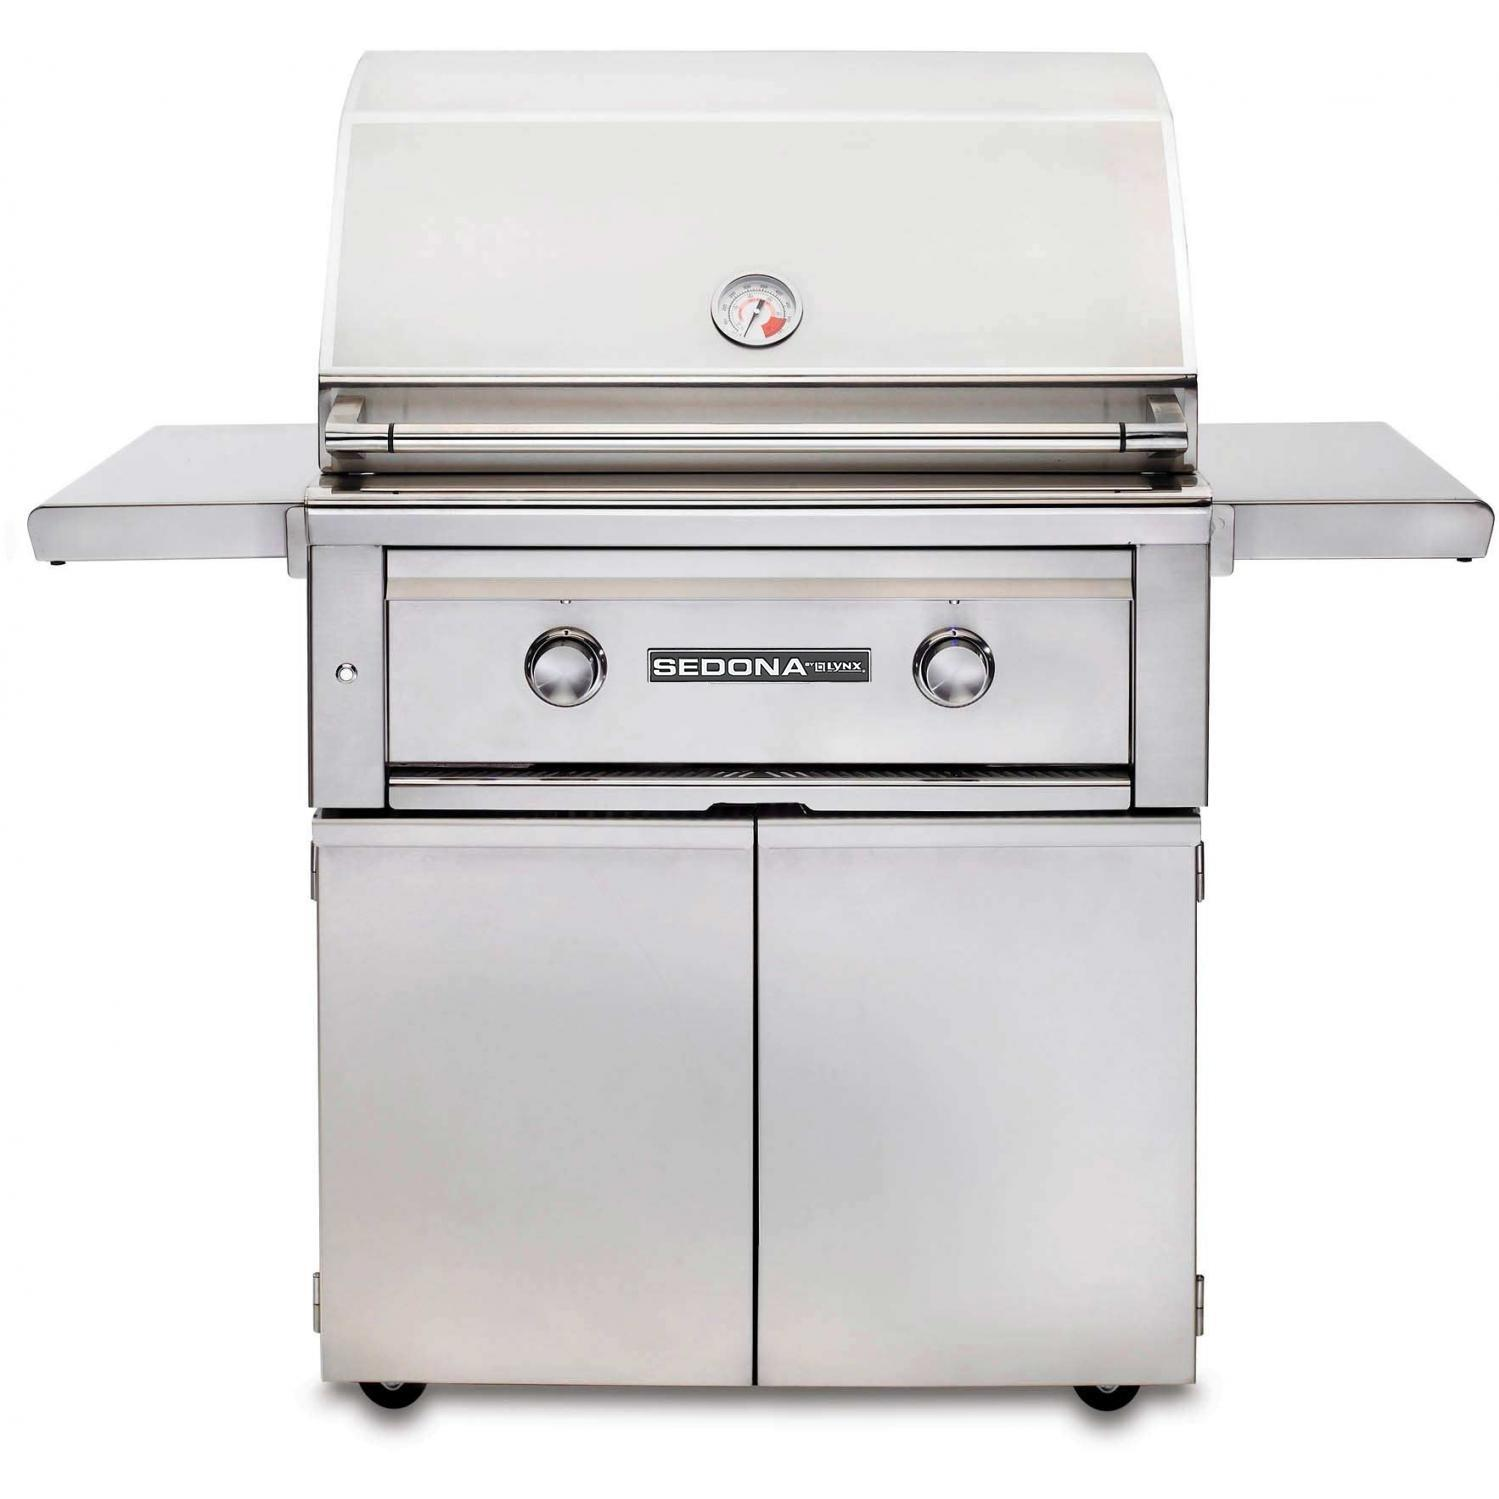 Lynx Sedona By Lynx 30-inch Propane Gas Grill On Cart With Prosear Burner L500ps-lp at Sears.com